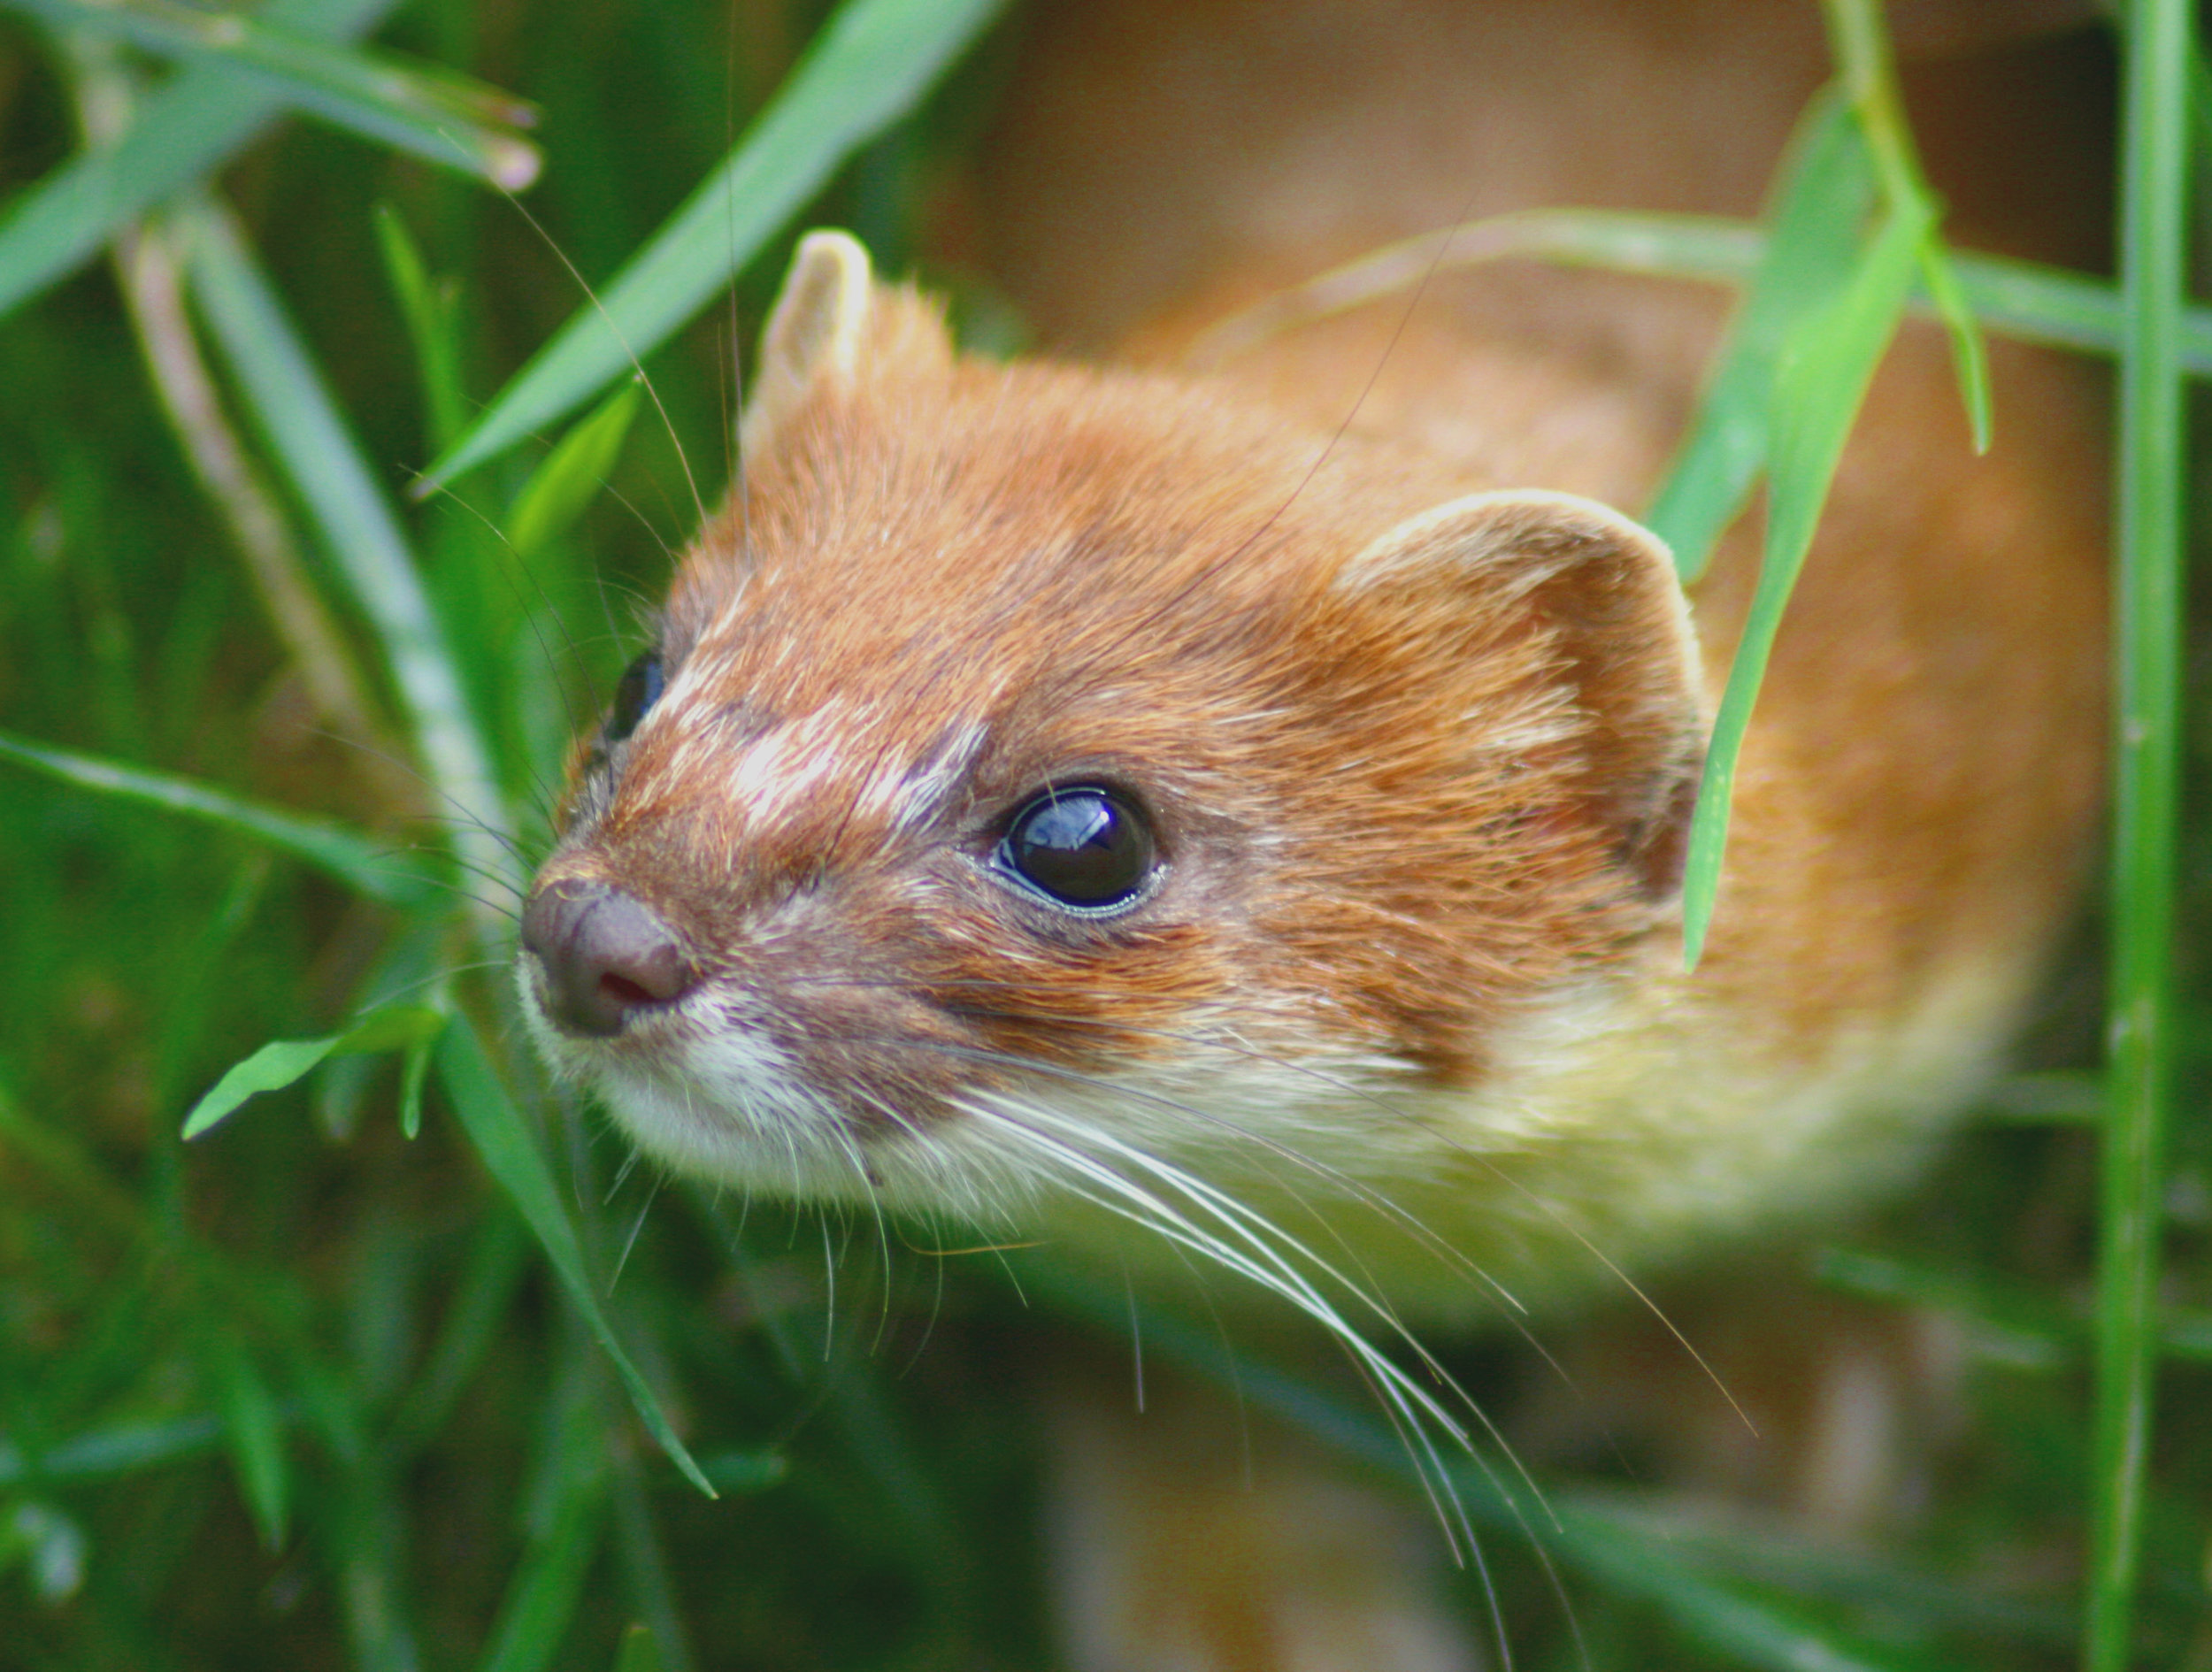 Gene drive technology is being explored as a control measure for New Zealand's introduced mammals, including stoats, rats and possums.   Kevin Law/Wikimedia Commons  (CC BY-SA 2.0)